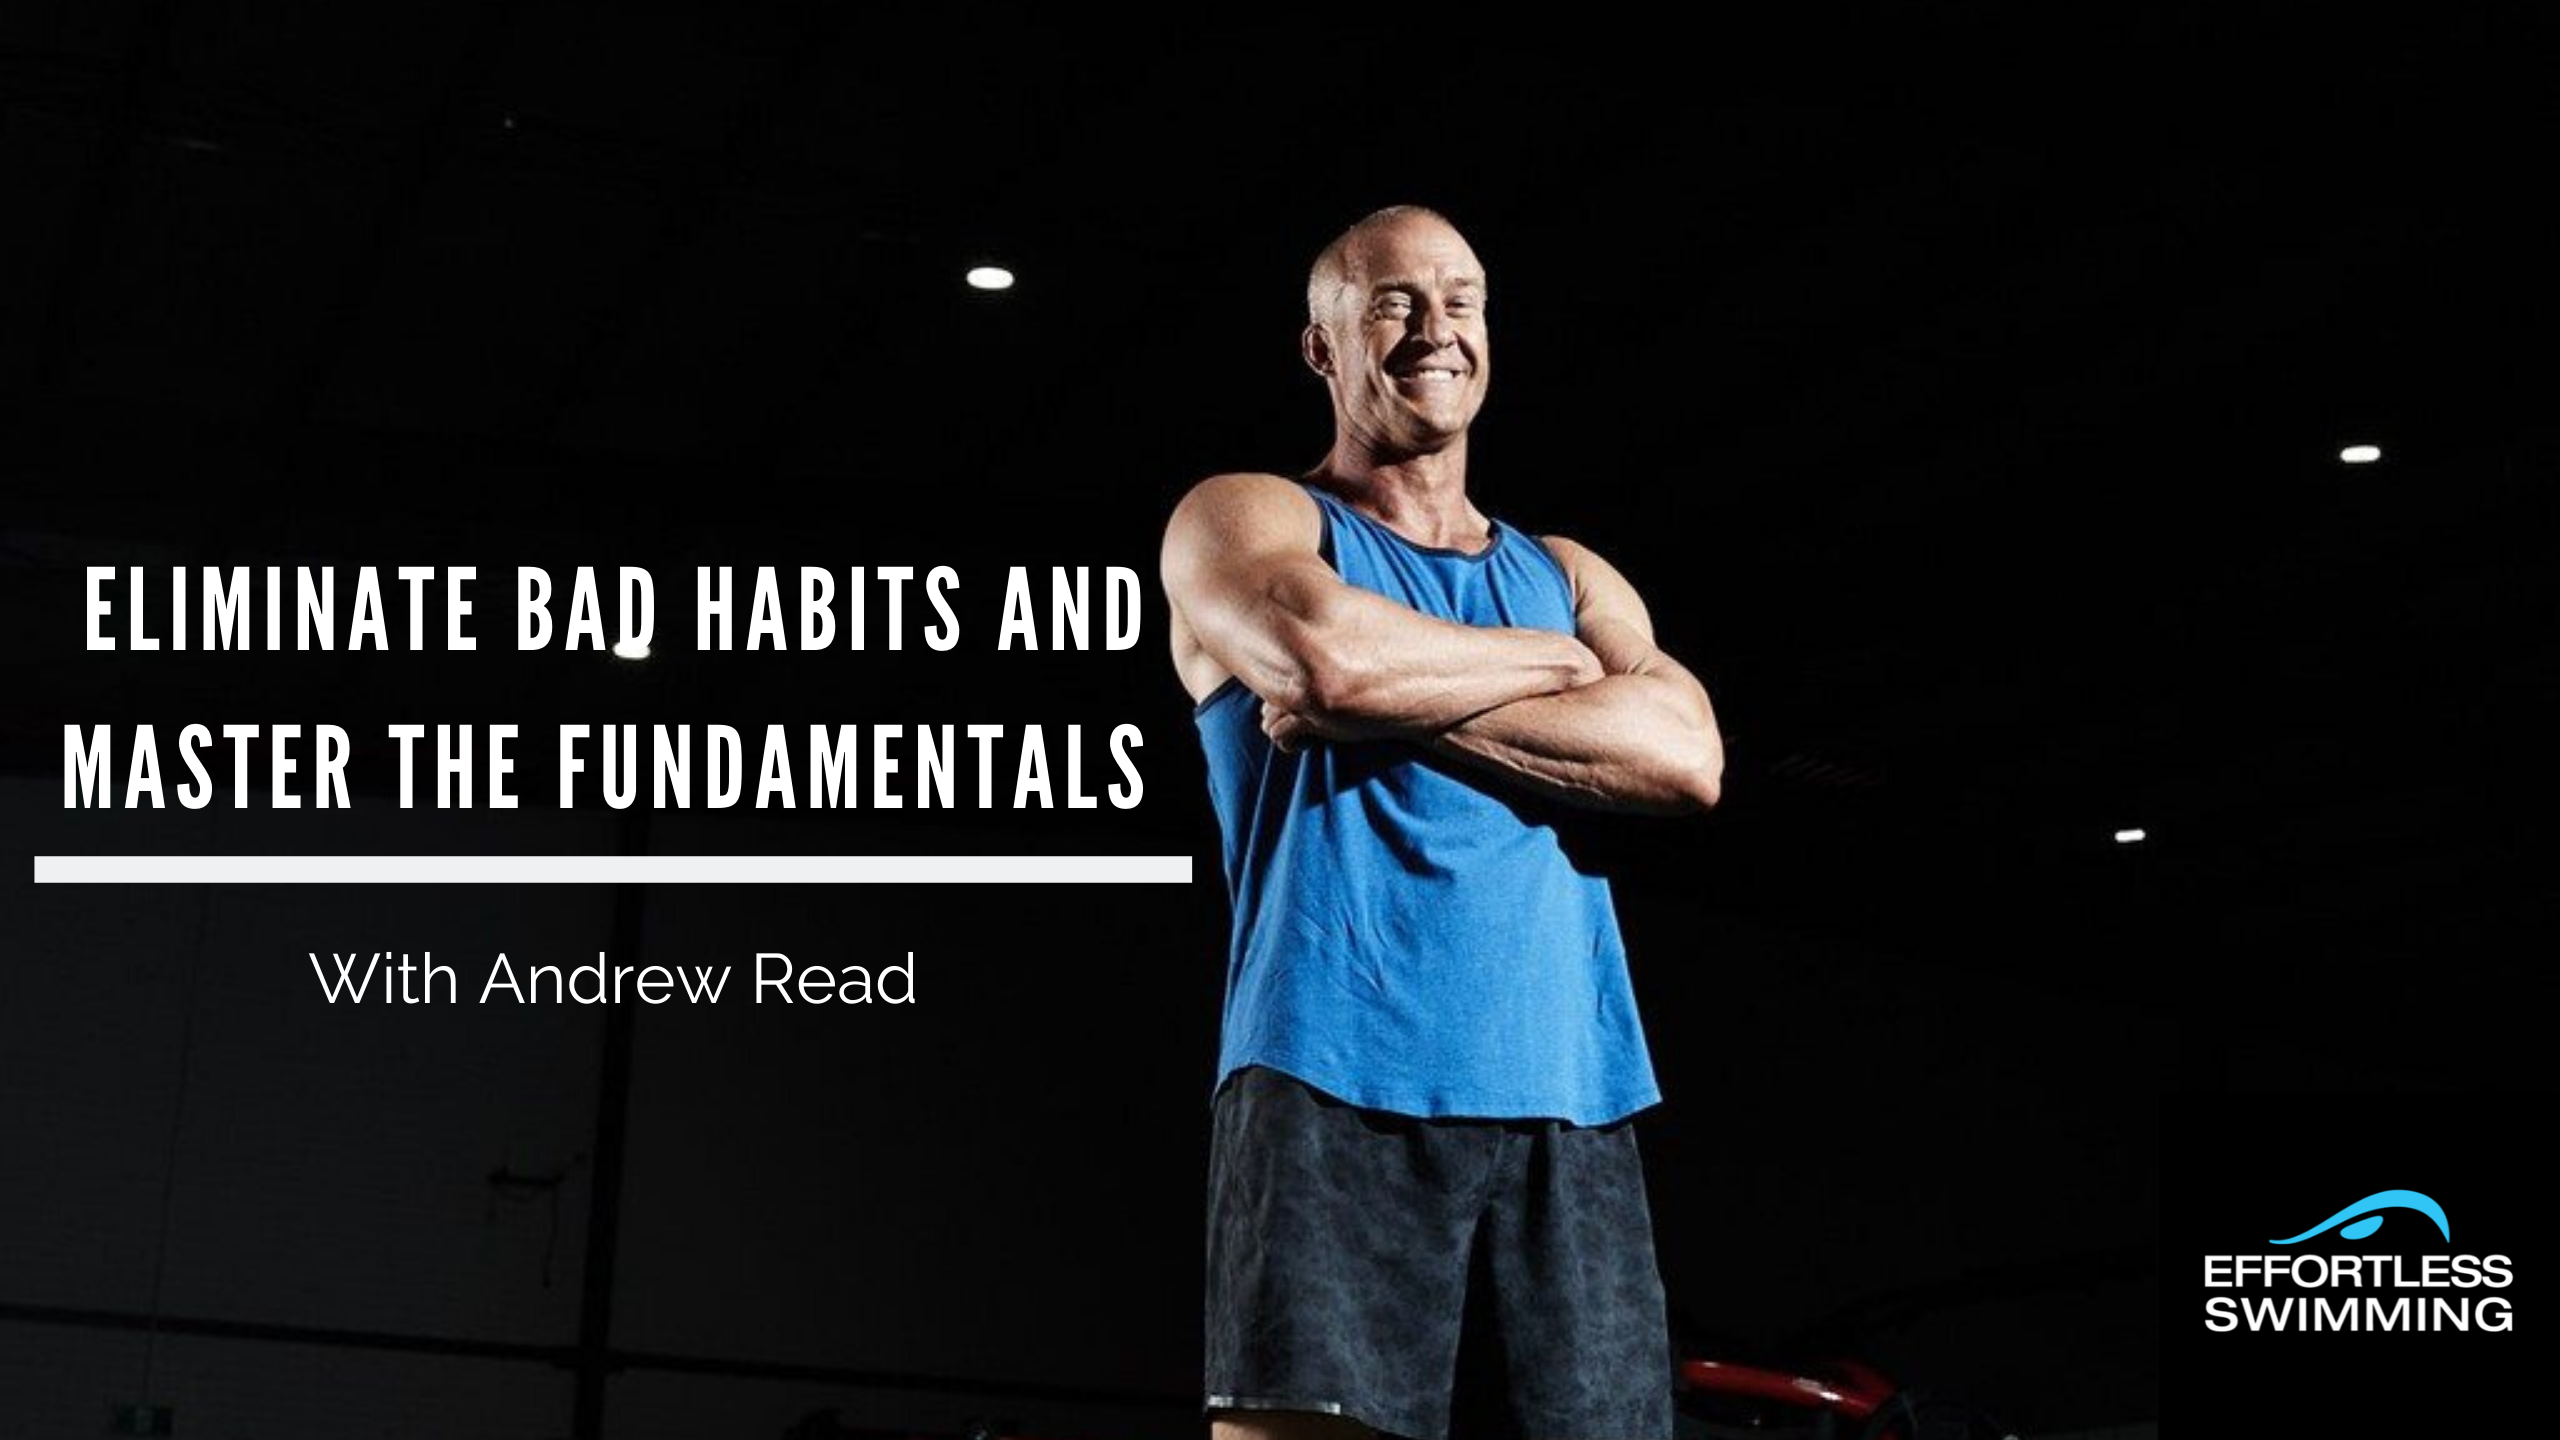 Eliminate Bad Habits And Master The Fundamentals With Andrew Read